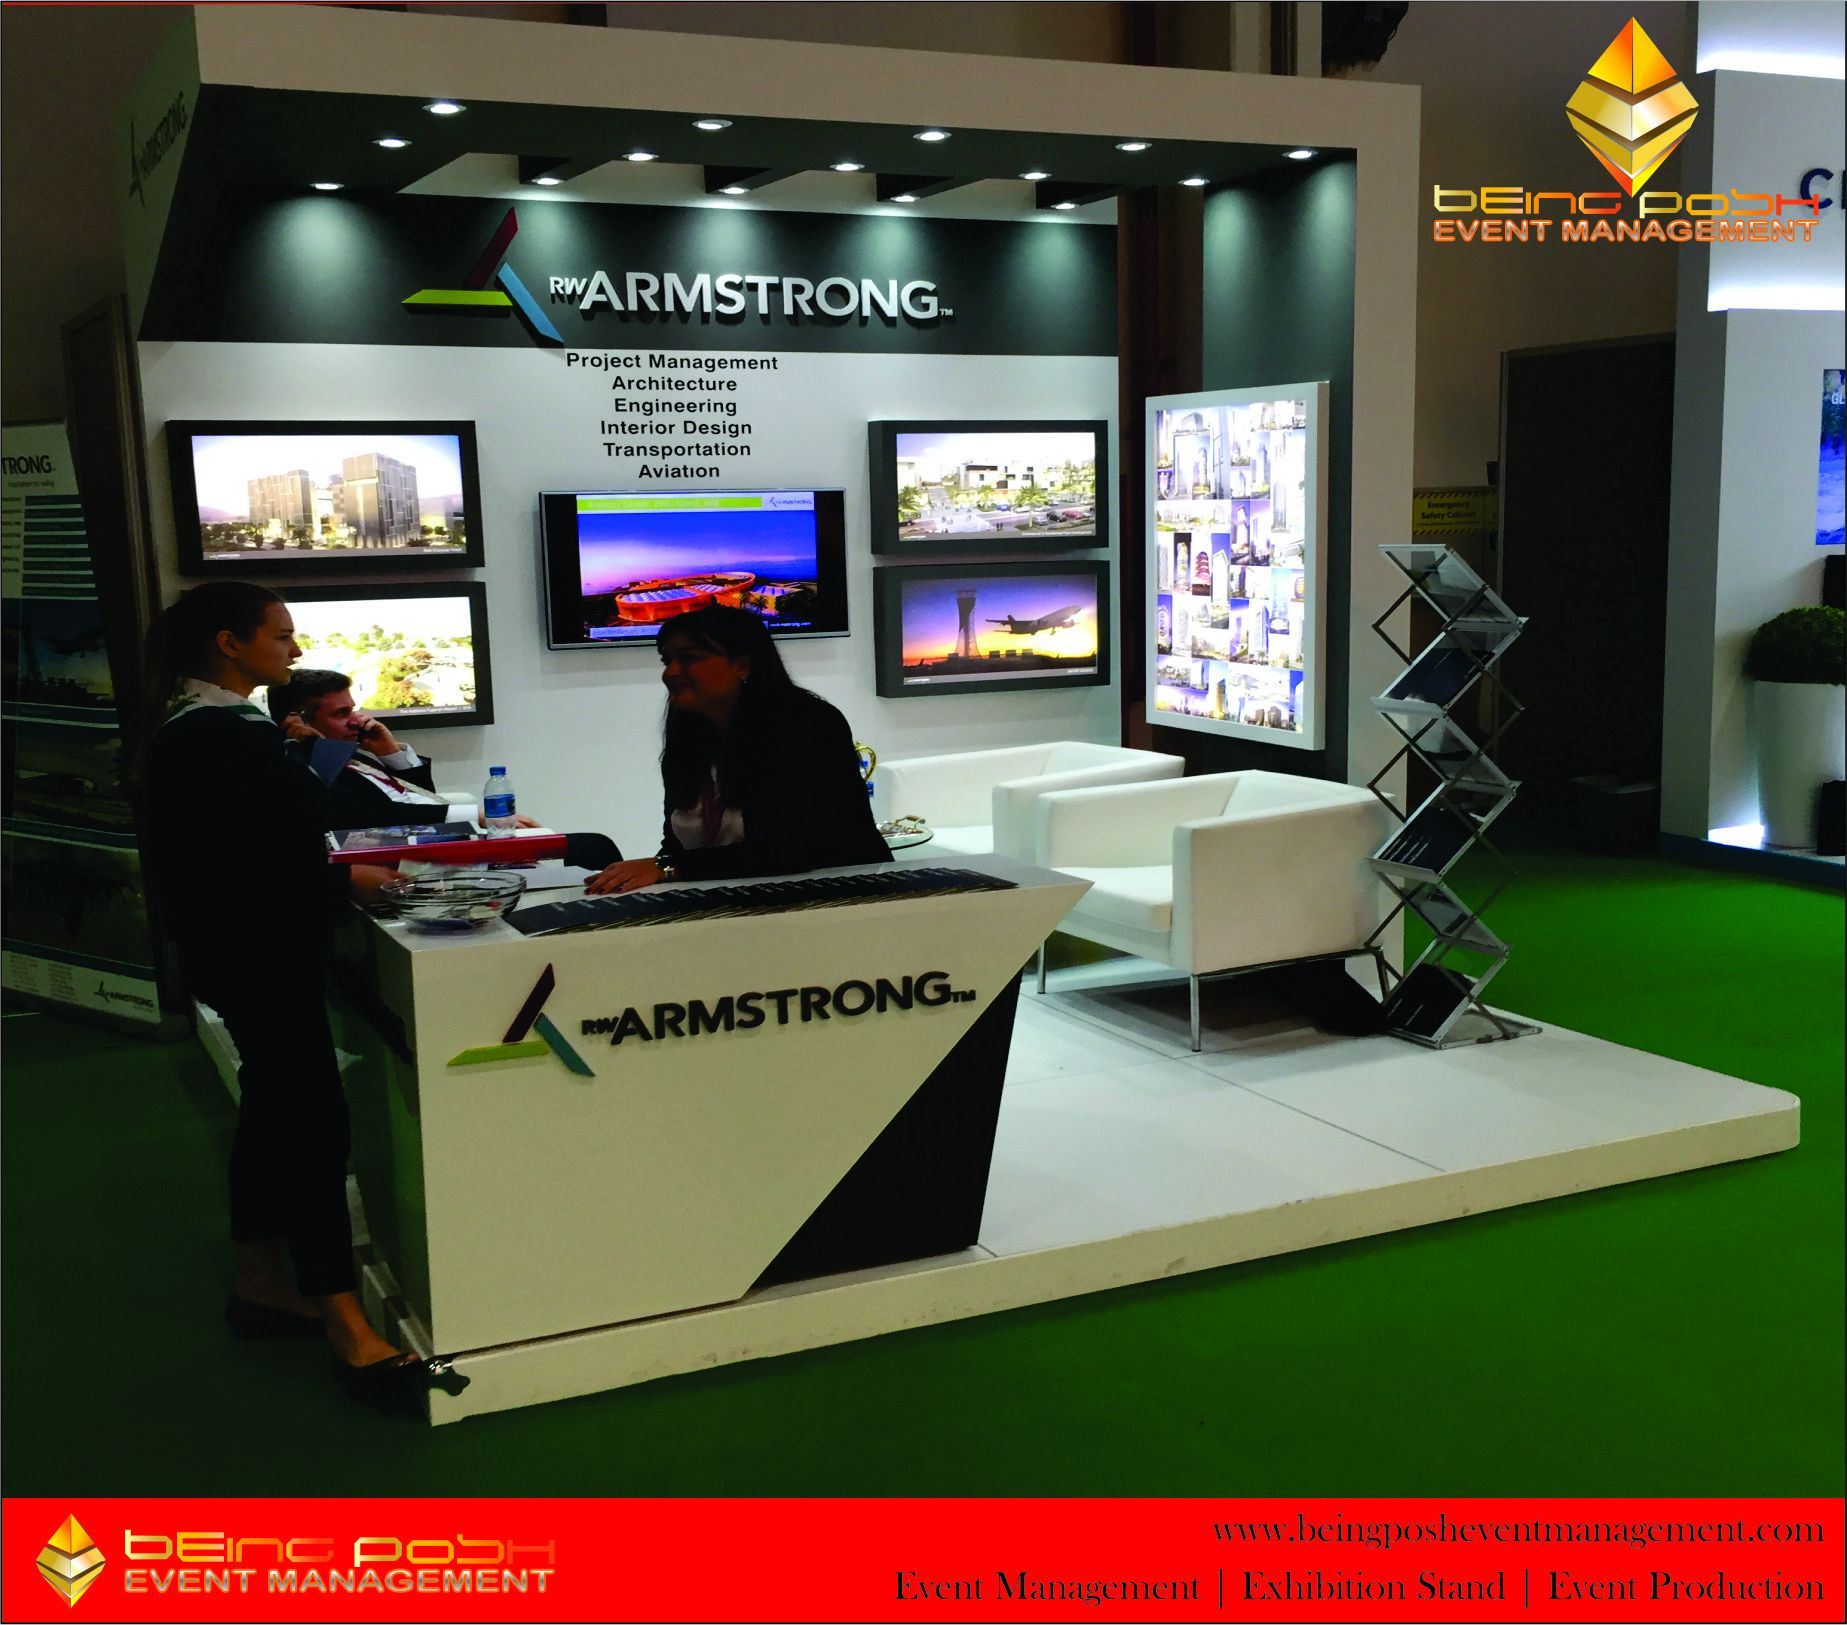 Exhibition Stand Management : City scape abu dhabi middle east exhibition stand by